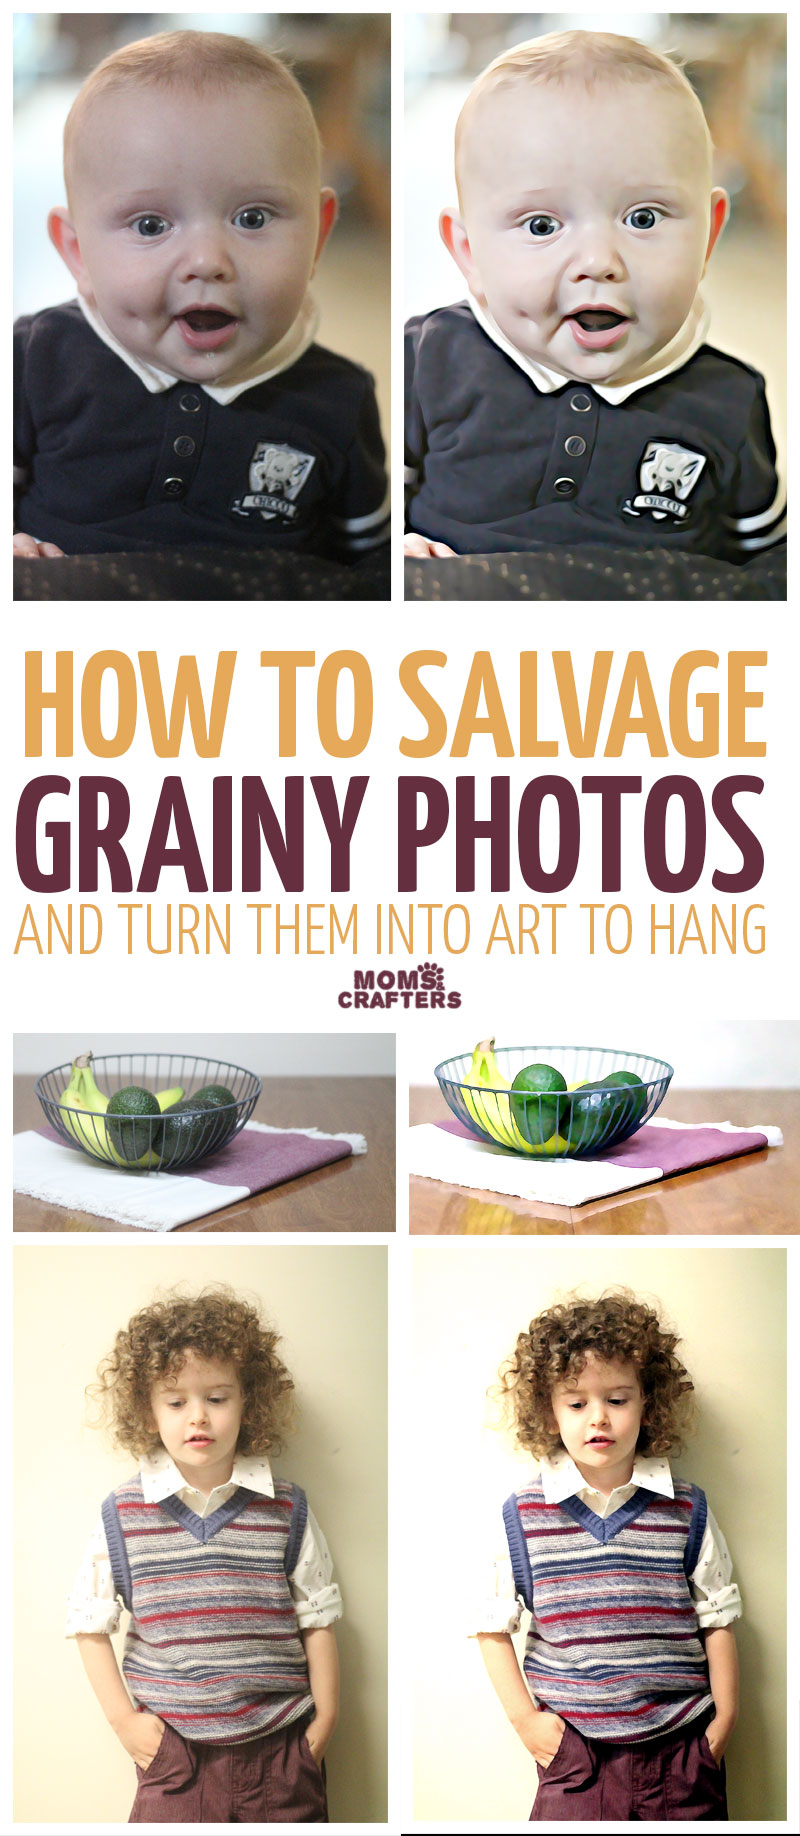 I discovered this cool way to salvage grainy photos - somehow all my best children's photos seem to blur or come out grainy. These kids photography tips help to salvage them and turn them into art for framing and using as home decor.